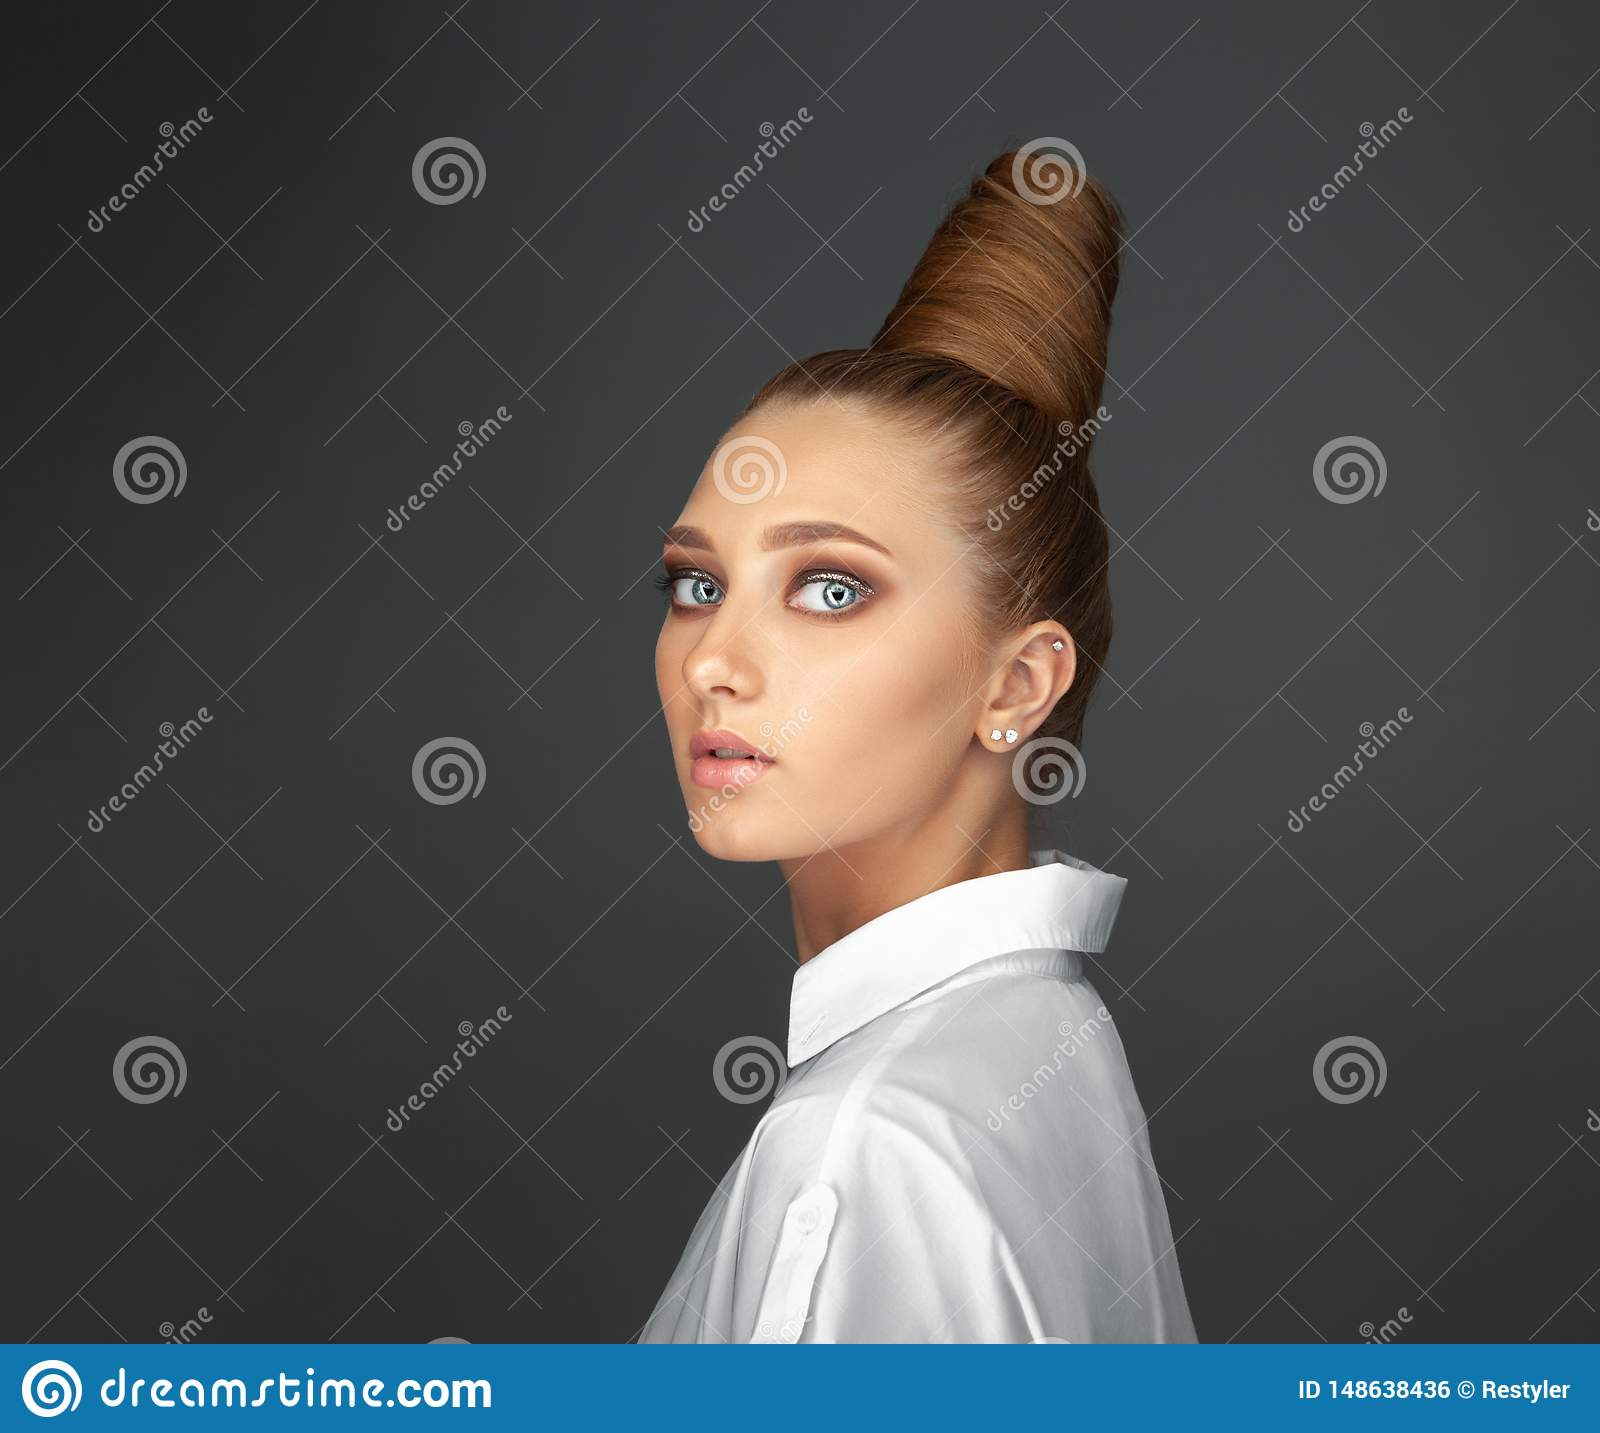 Beautiful spectacular blonde lady with an unusual high hairdo with big blue eyes on a dark background